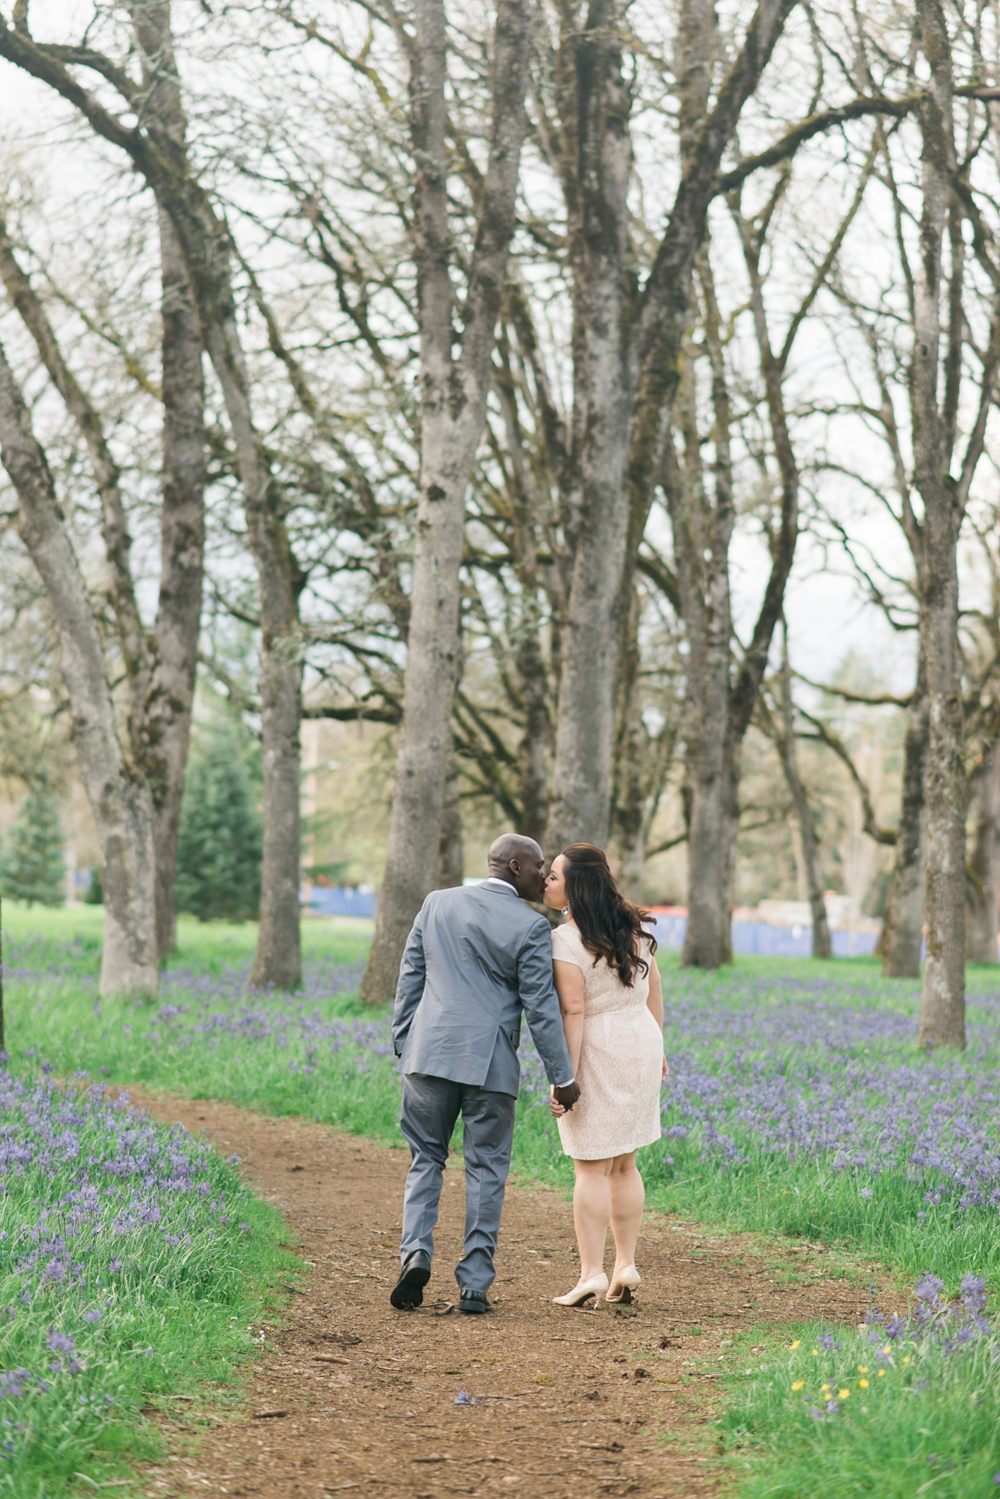 romantic-salem-engagement-photos-bush-park-shelley-marie-photo-13